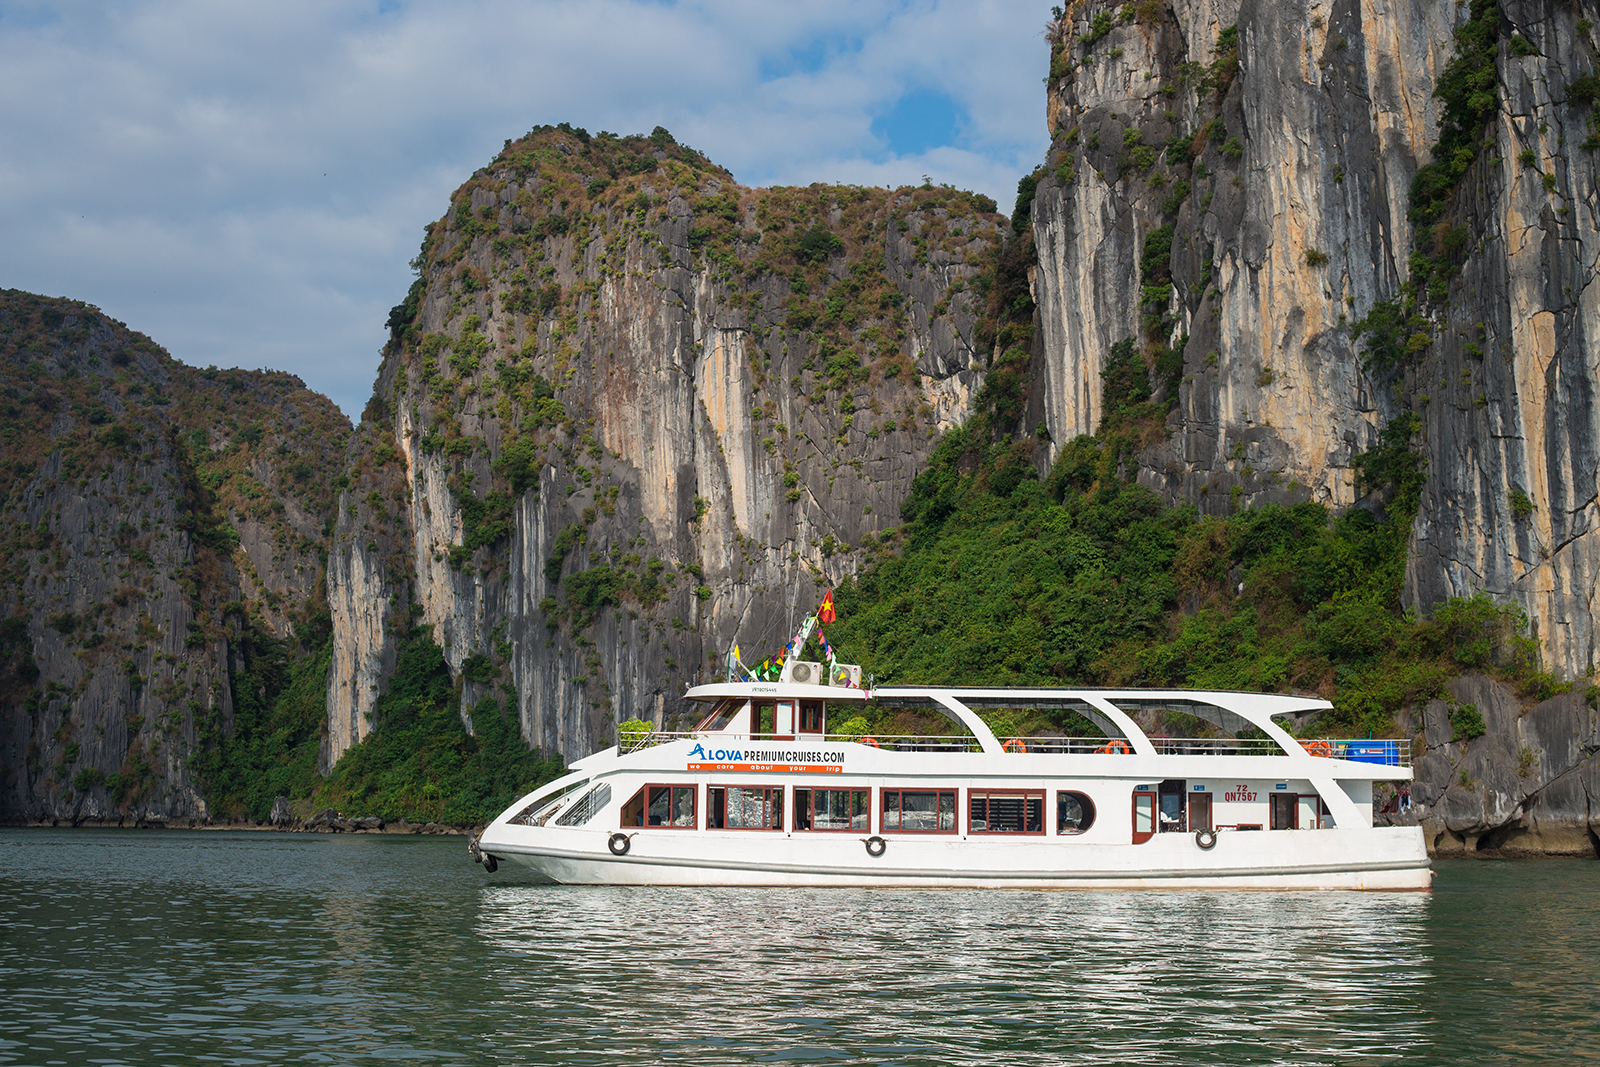 Ha long bay 1 day 5 hours, Tours, Ha long bay 1 day 5 hours, Cozy Vietnam Travel